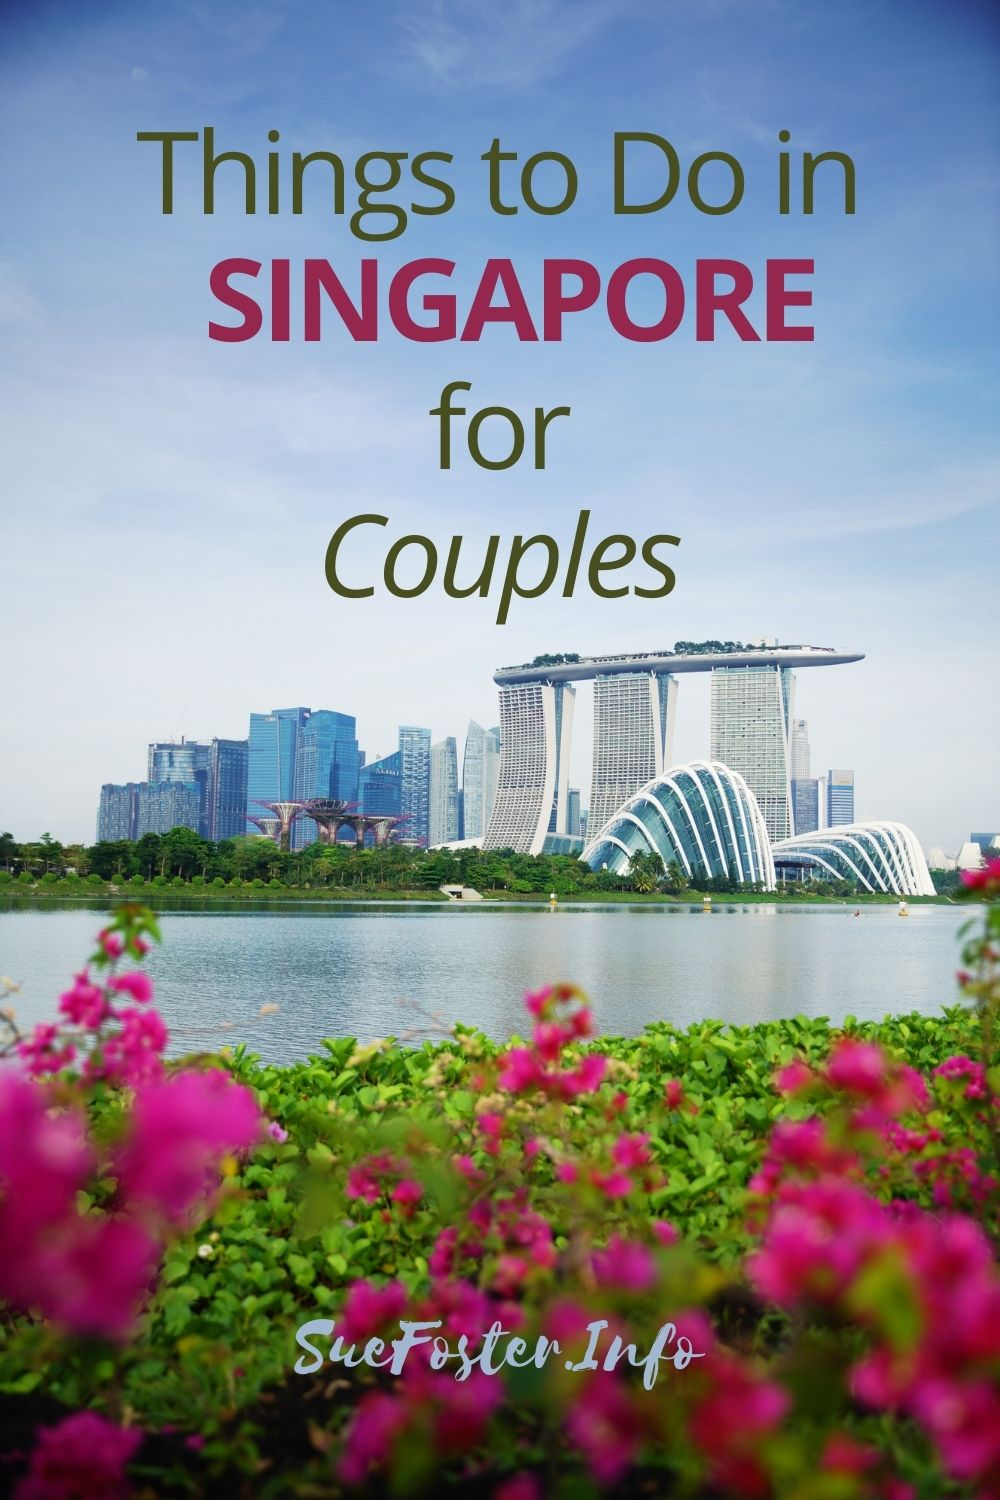 Things to do in Singapore for couples.